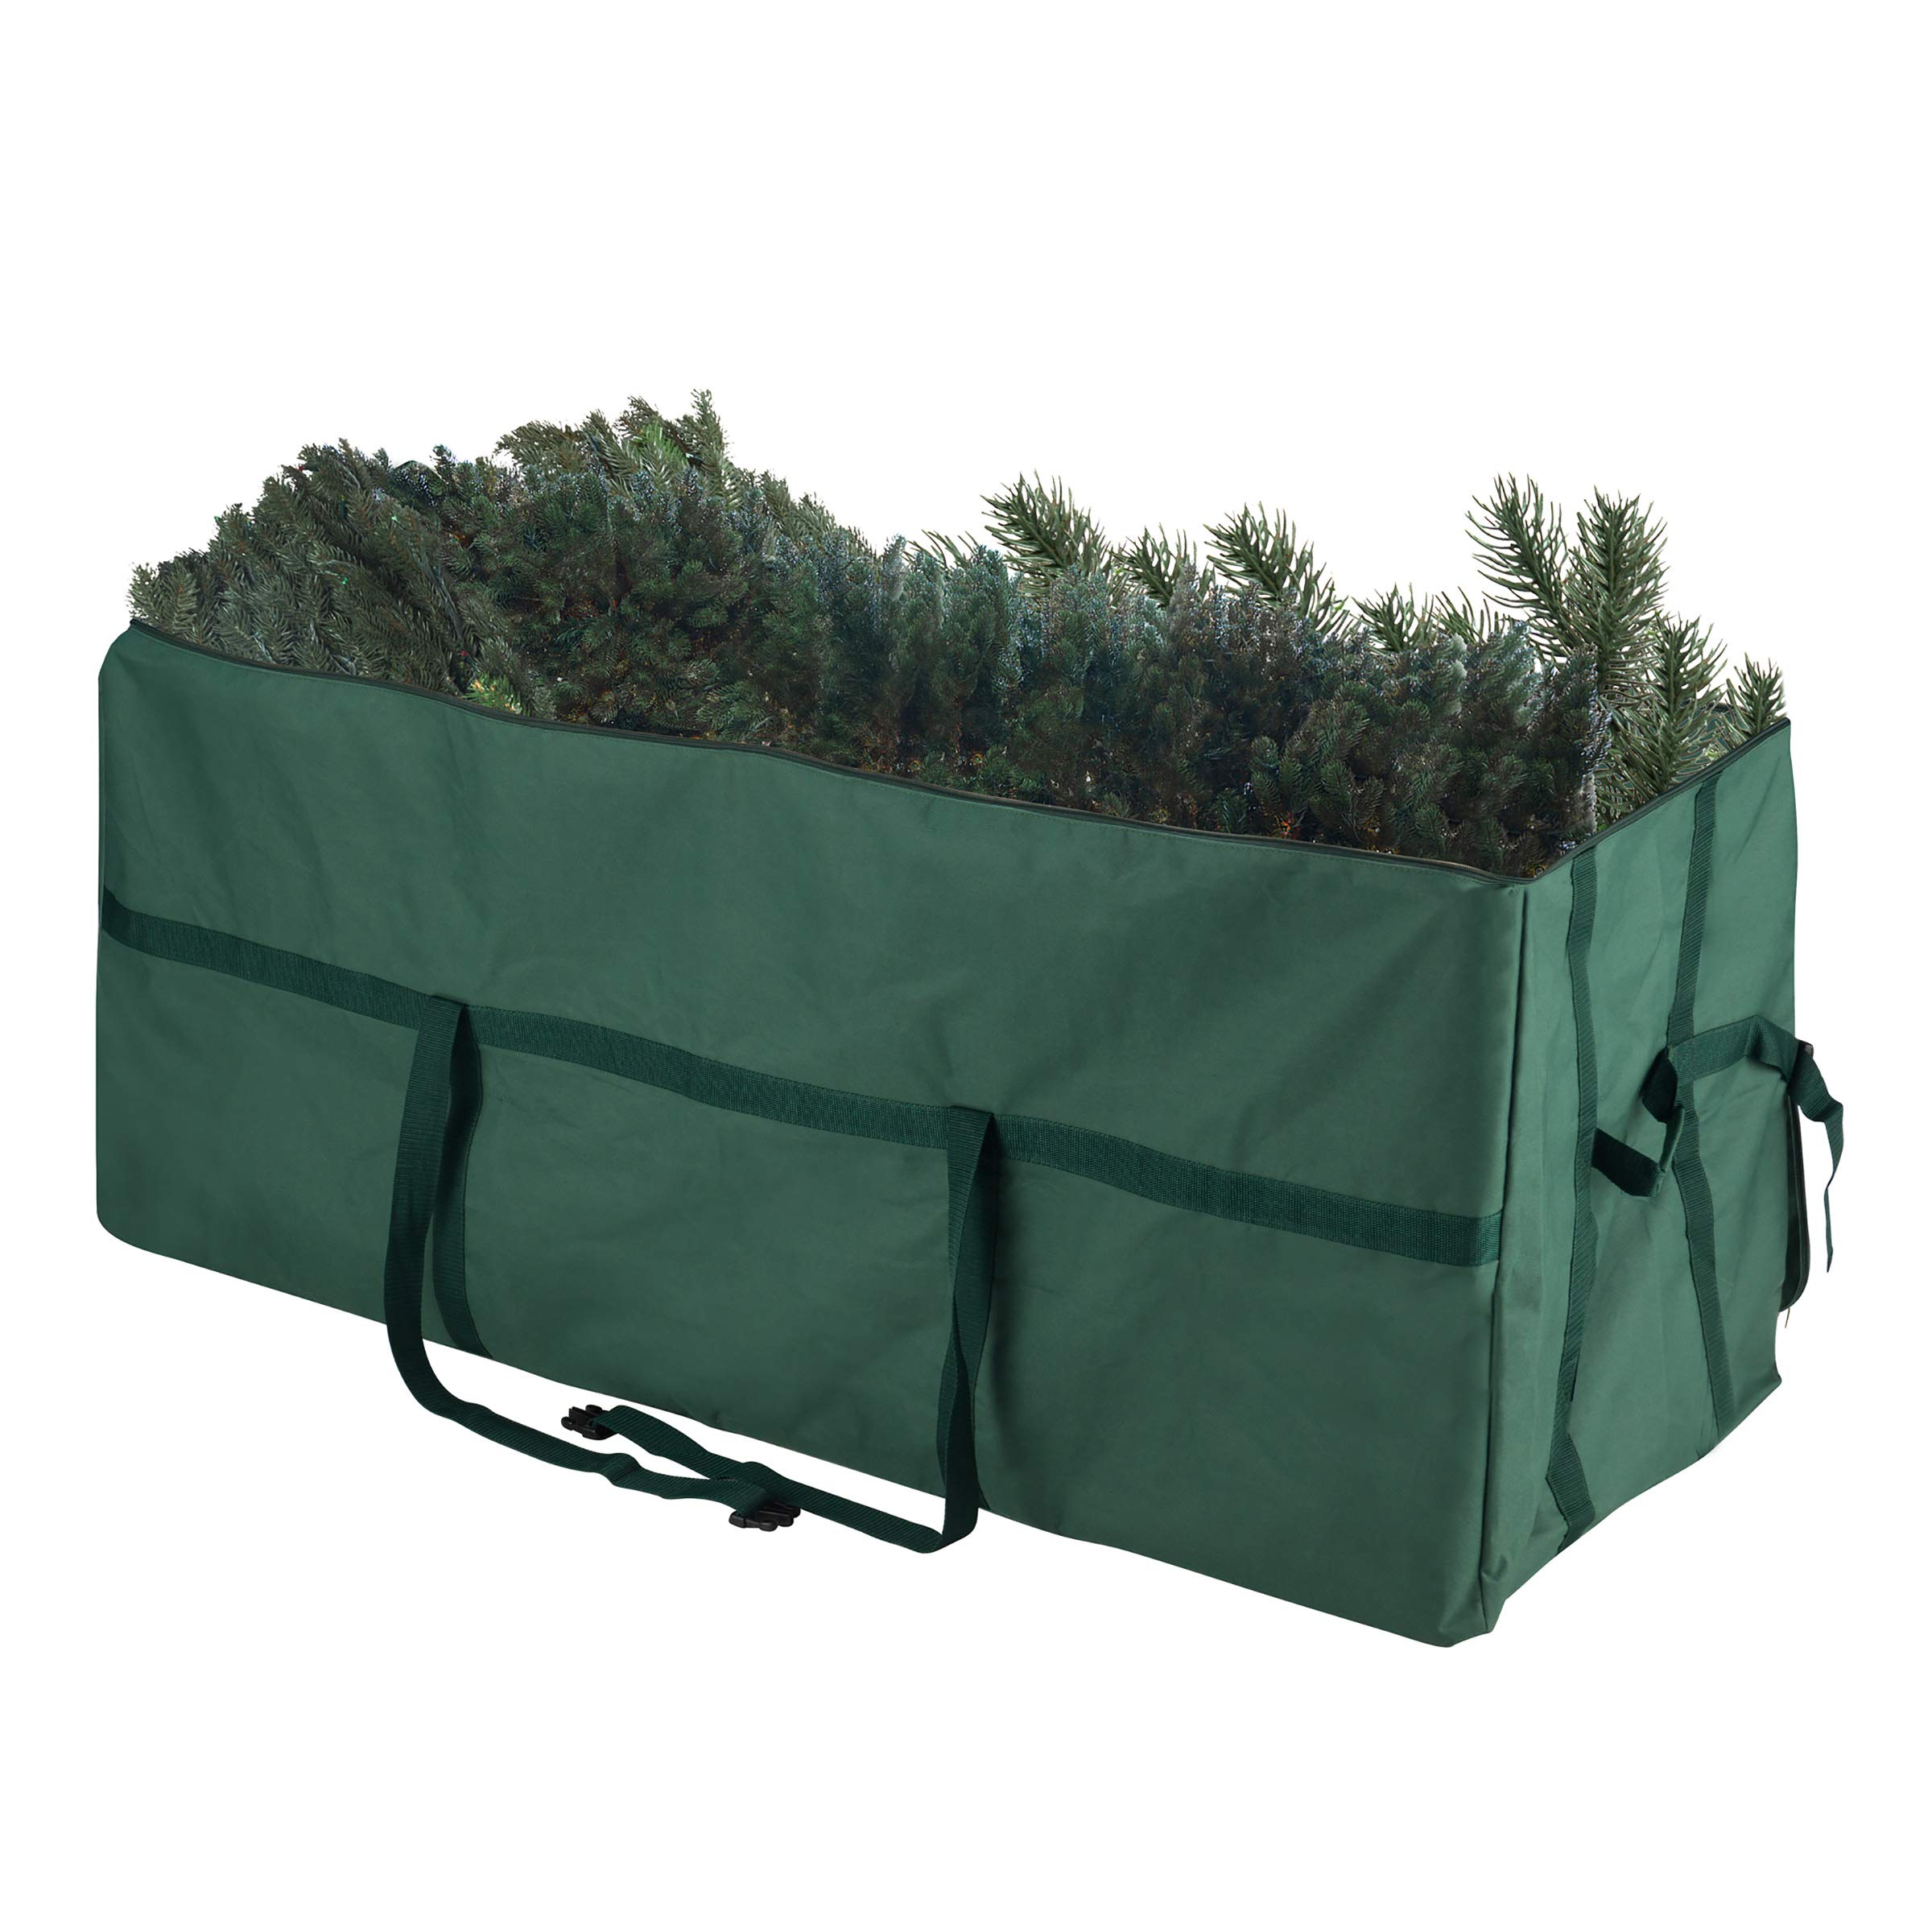 Elf Stor 83-DT5030 Heavy Duty Canvas Christmas Storage Bag Large for 9 Foot Tree, Non-Rolling, Green by Elf Stor